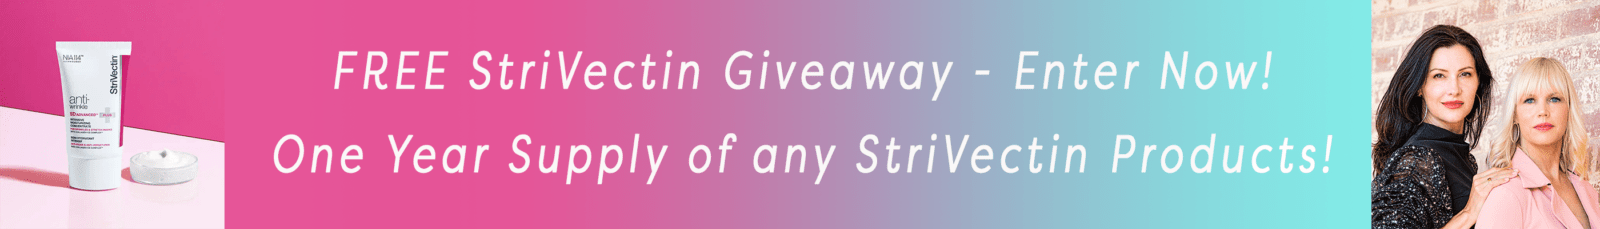 StriVectin Giveaway!